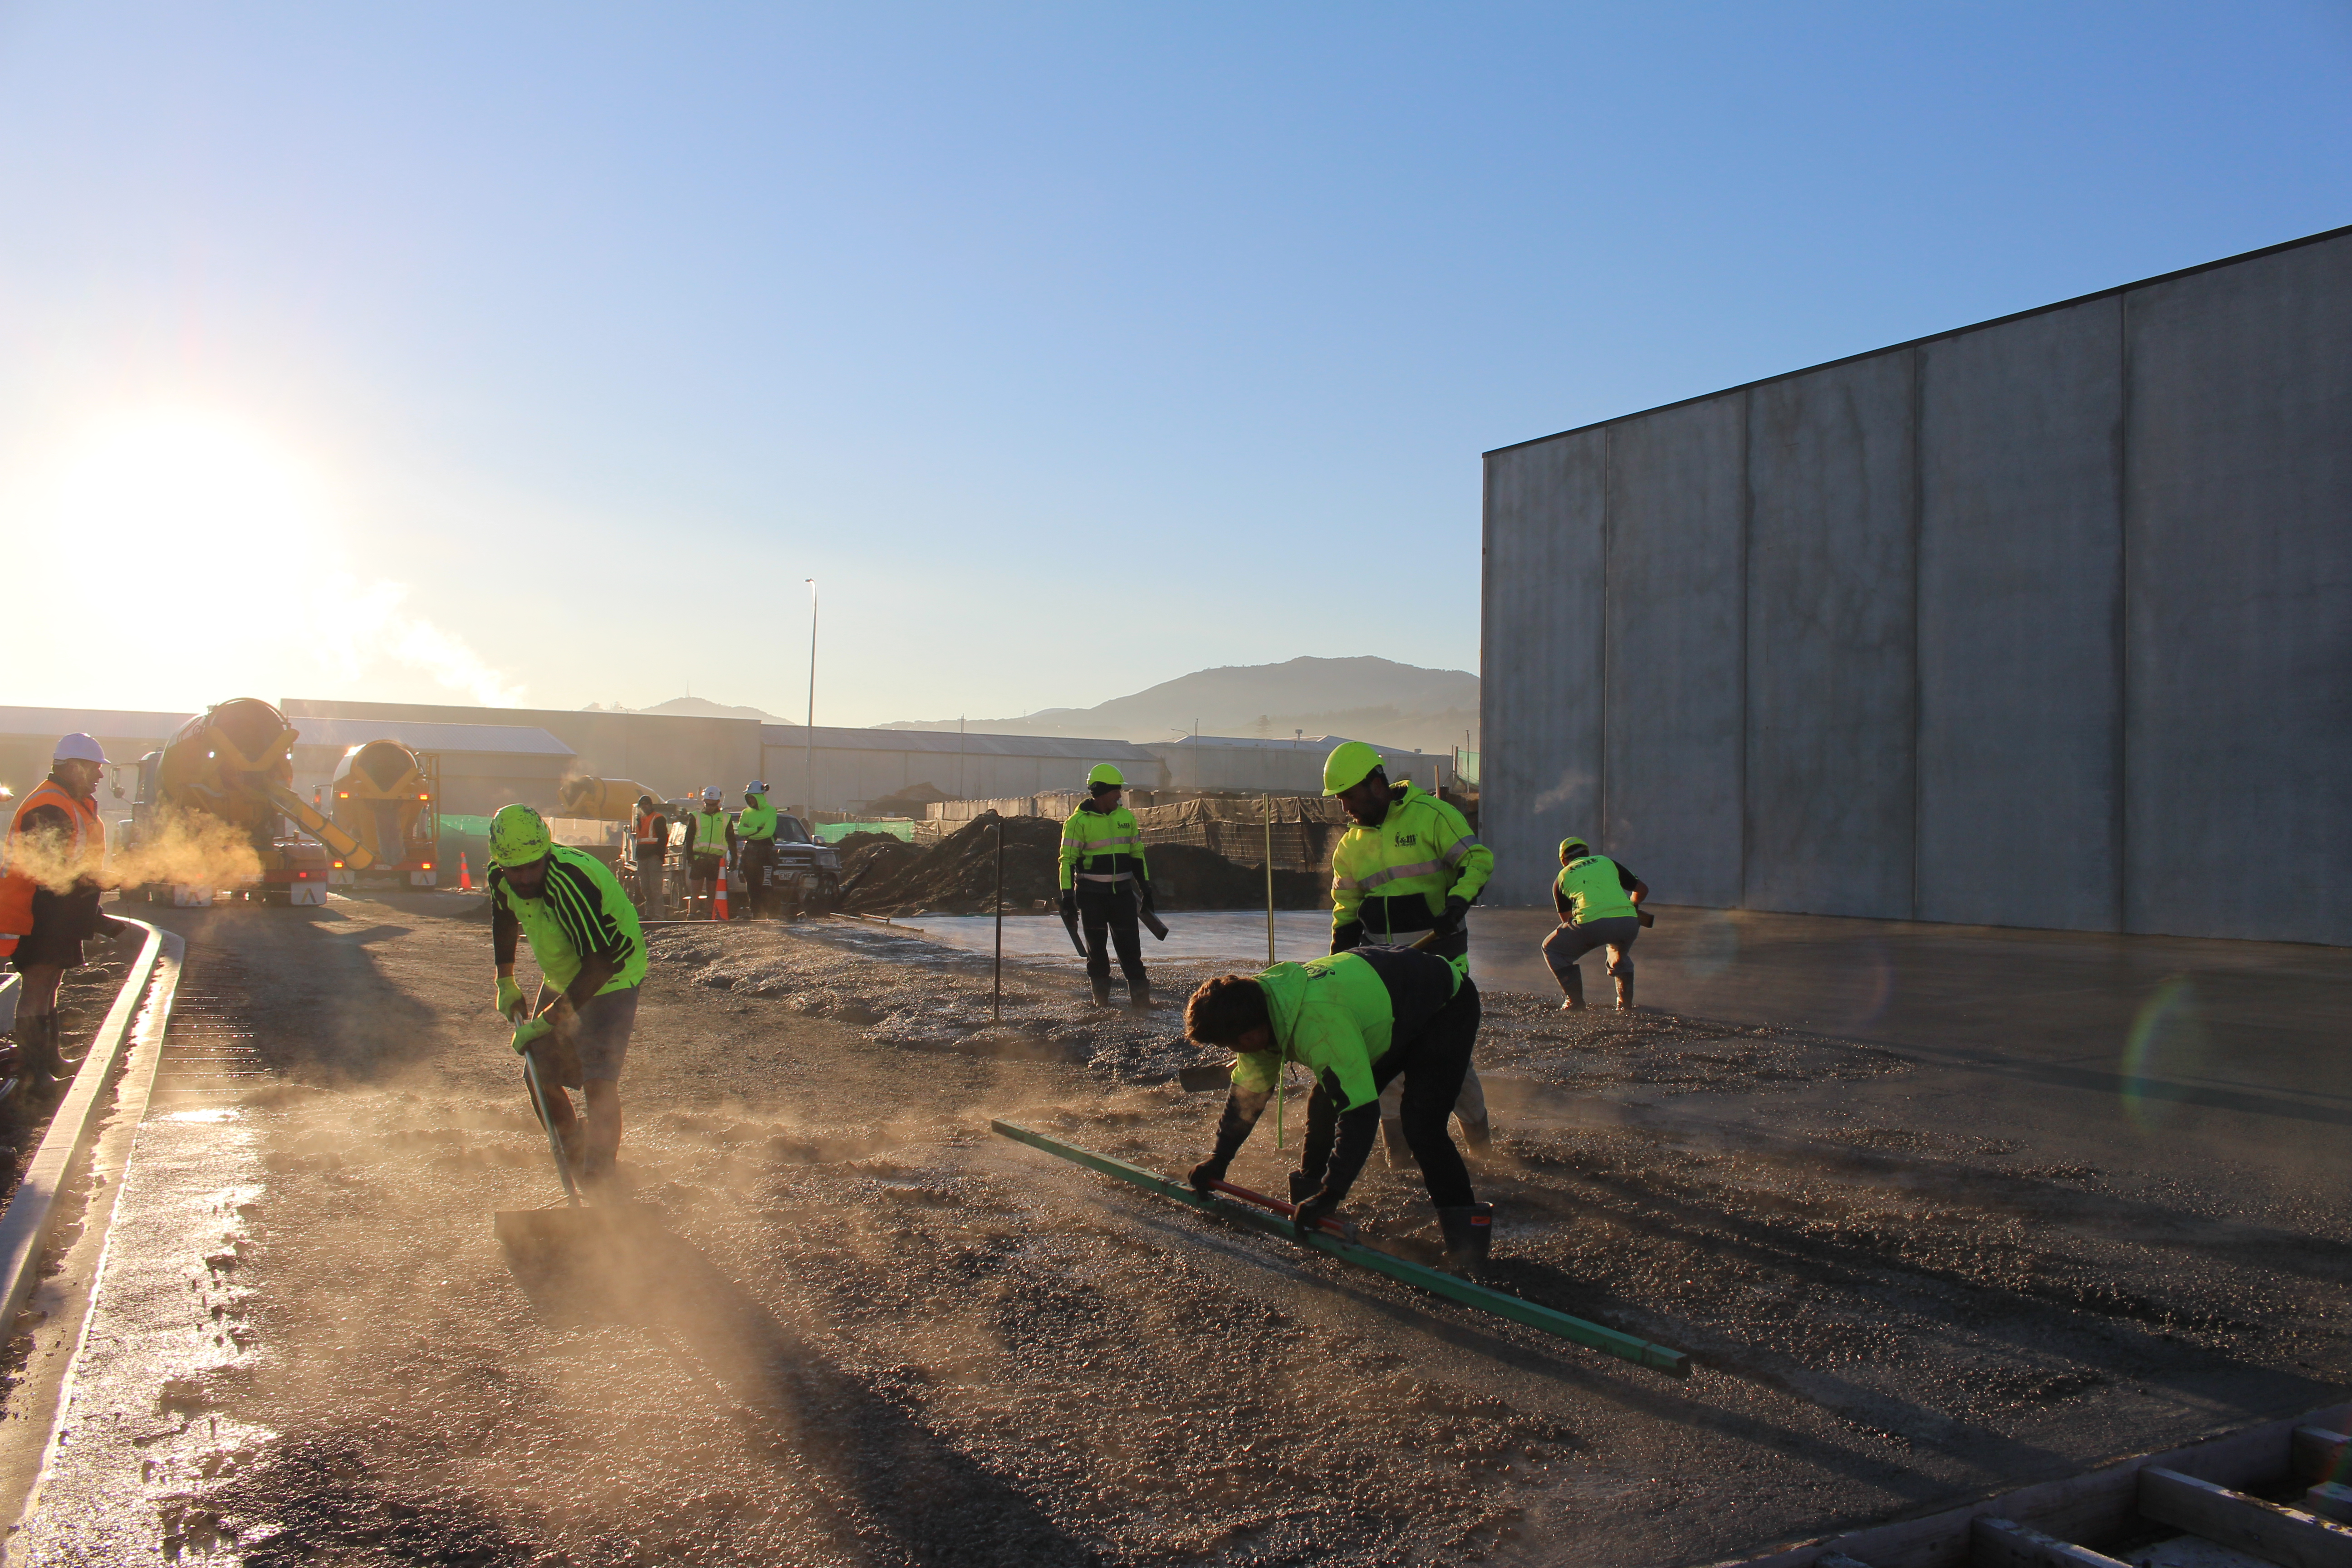 Workers early in the morning preparing the base of a fibre reinforced slab saving time over the traditional methods